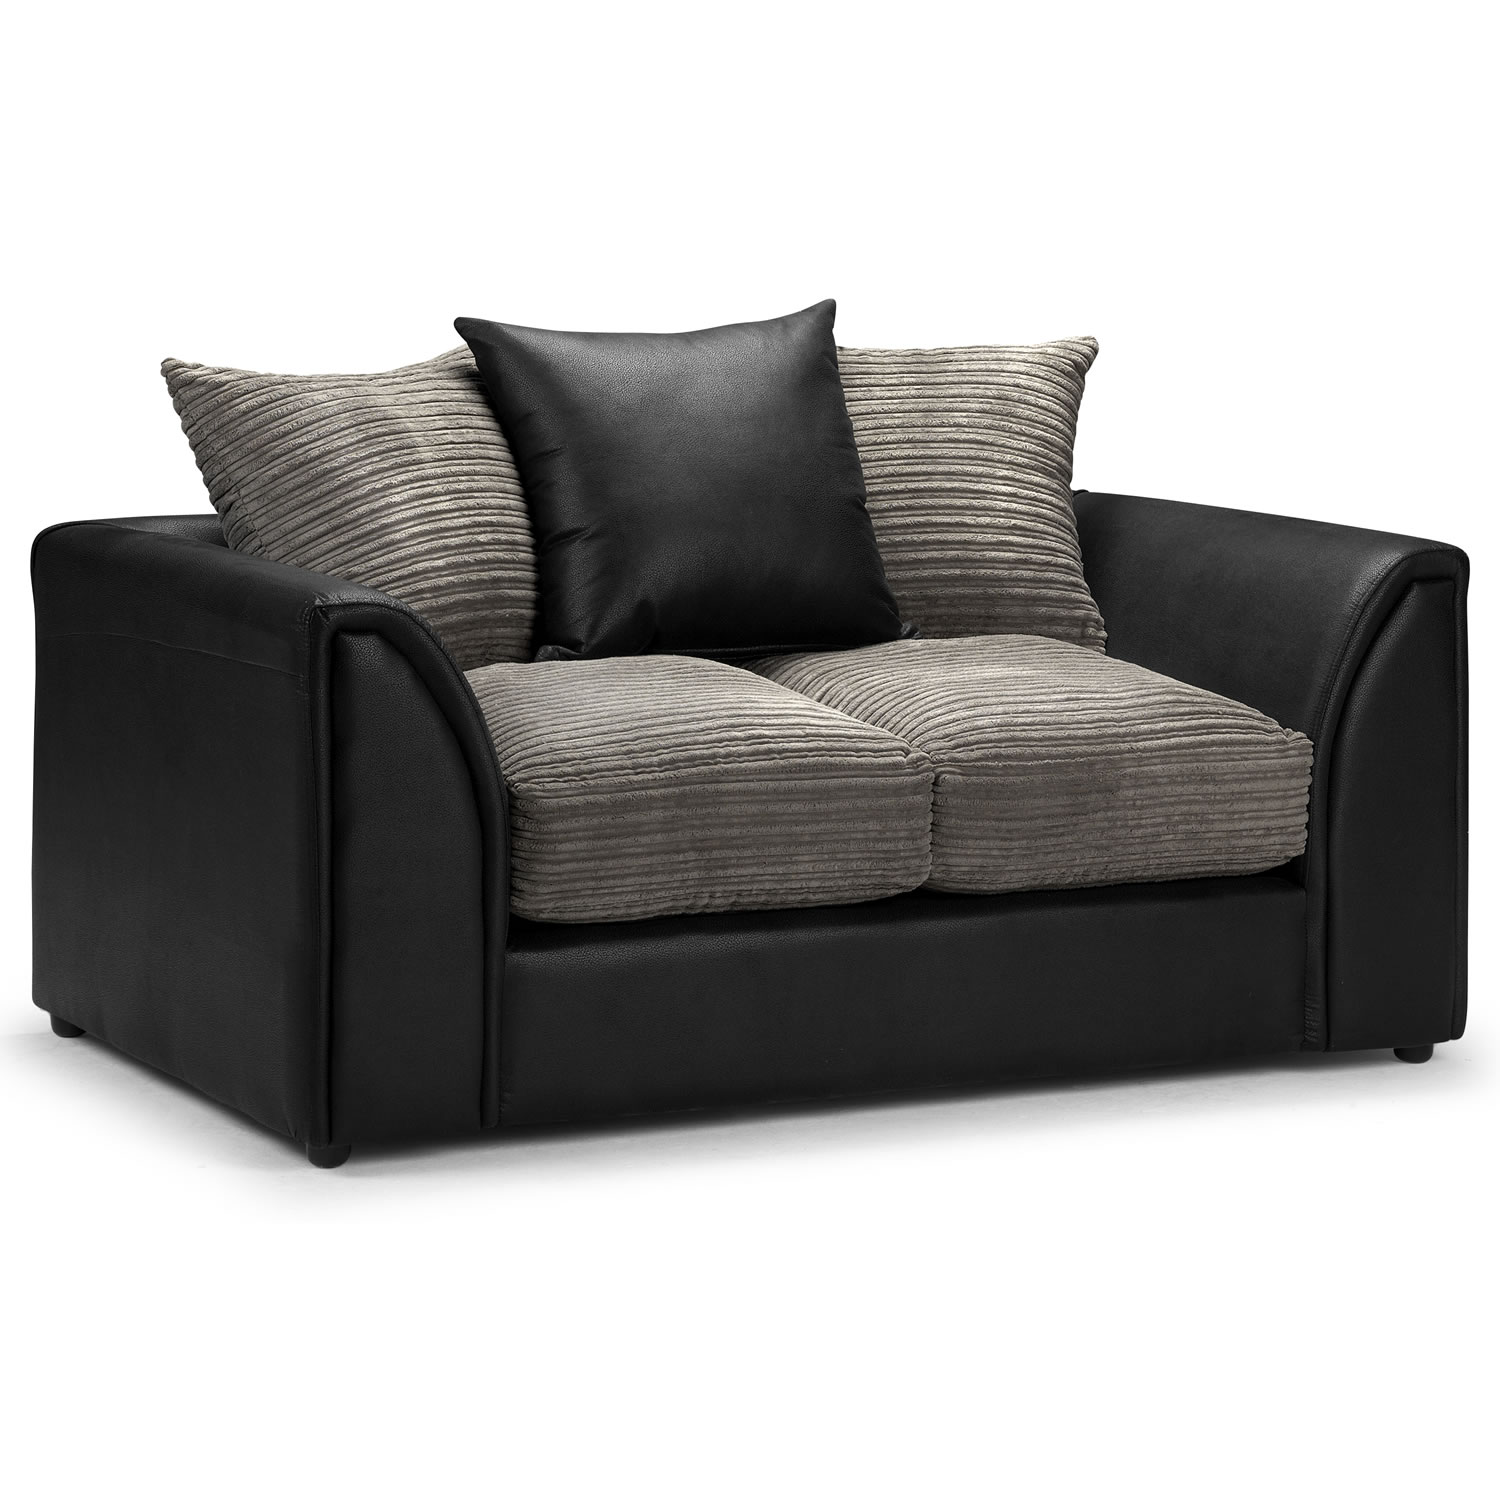 2 Seater Sofa With Soft Foam In Seat And Back Cushion Grey Black